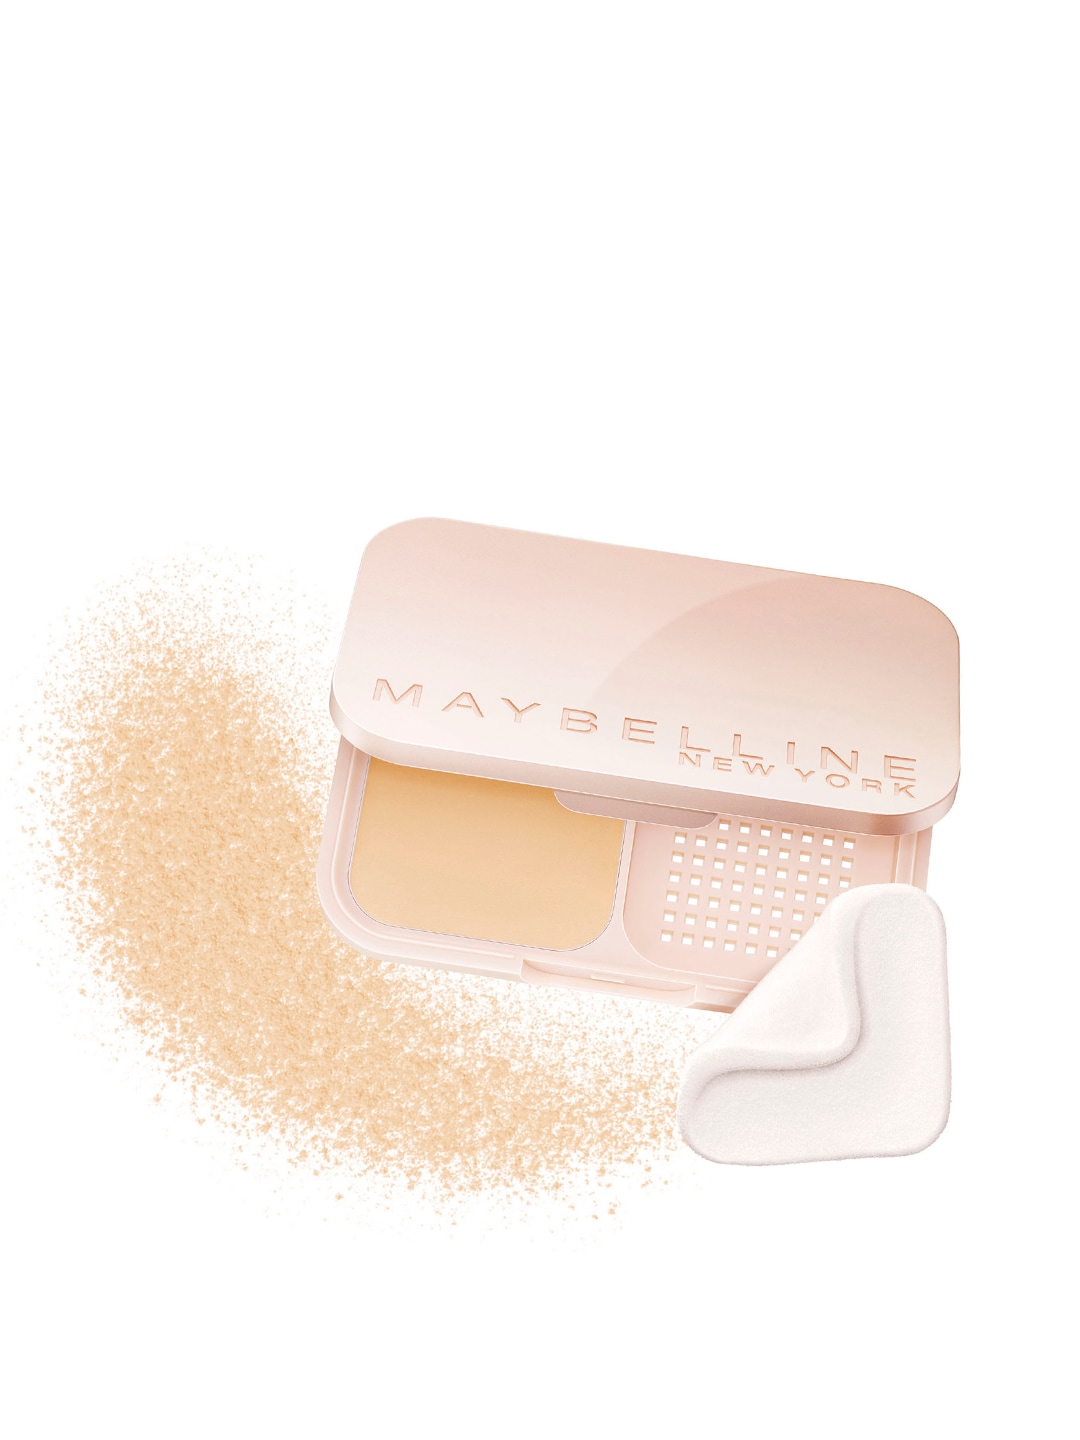 Maybelline Dream Satin Skin 2 Way Cake Soft Honey B2 Compact image